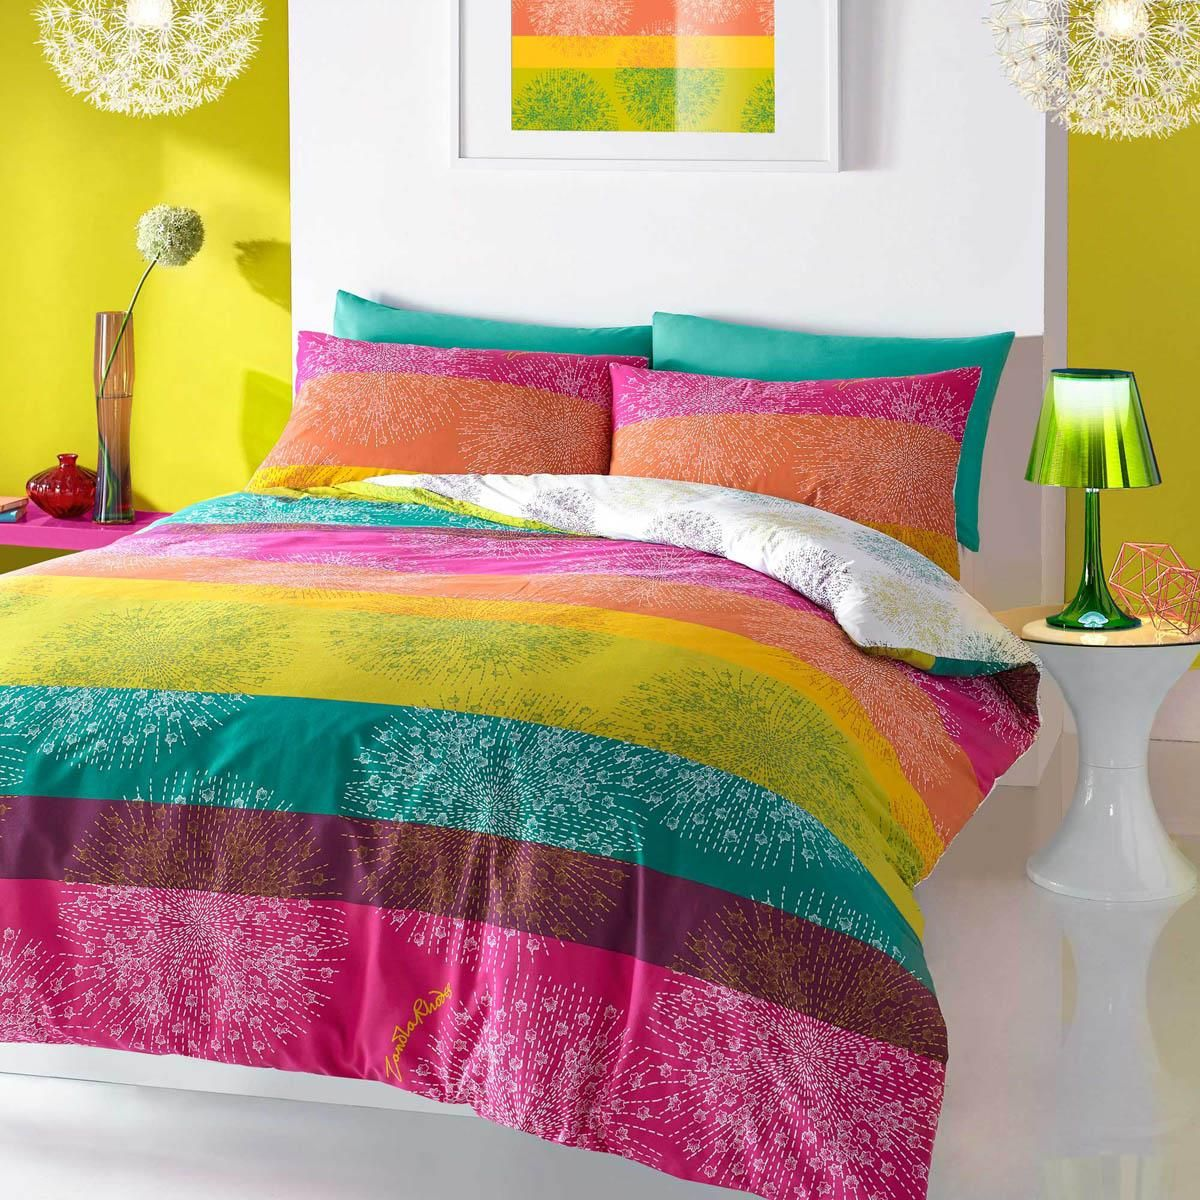 zandra rhodes sherbet duvet set  zandra bedding  pinterest  - find this pin and more on zandra bedding by zlrhodes